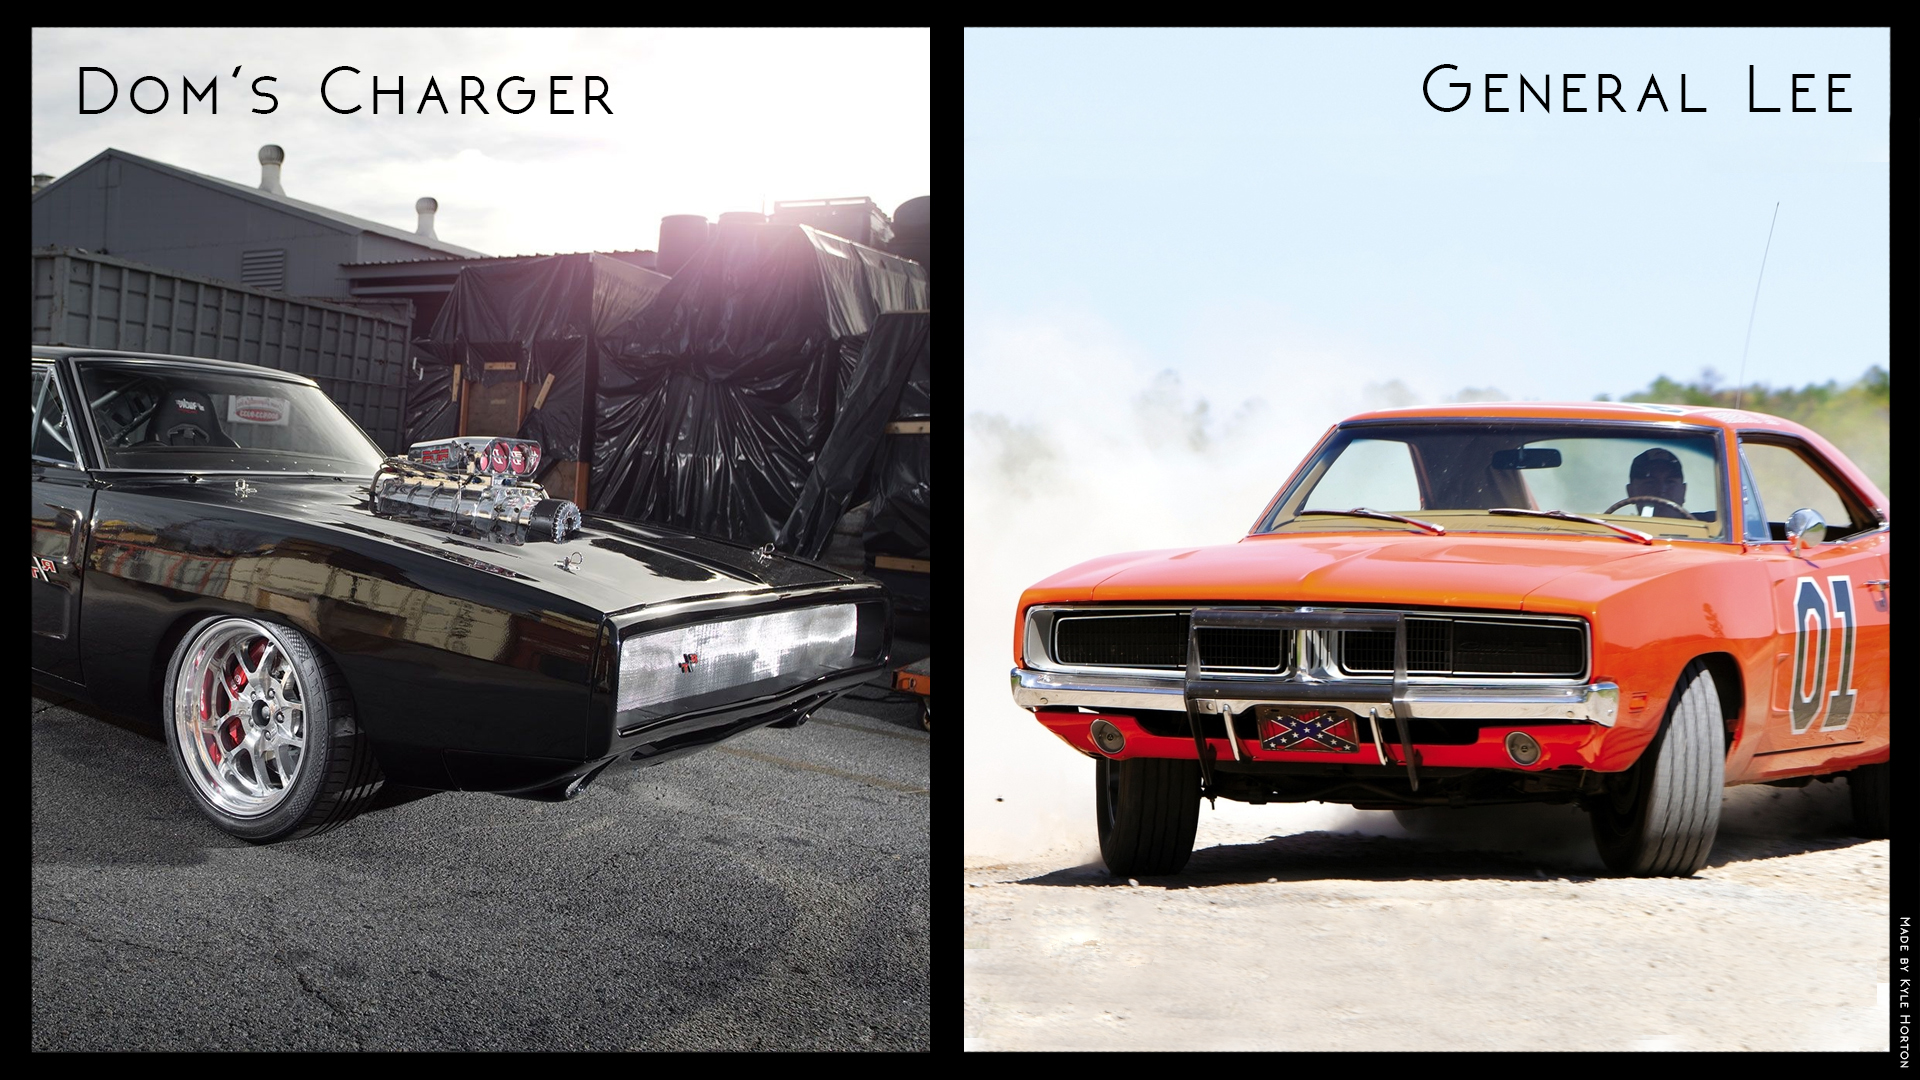 Whichcarwednesday Week 7 Dom S Charger Vs General Lee